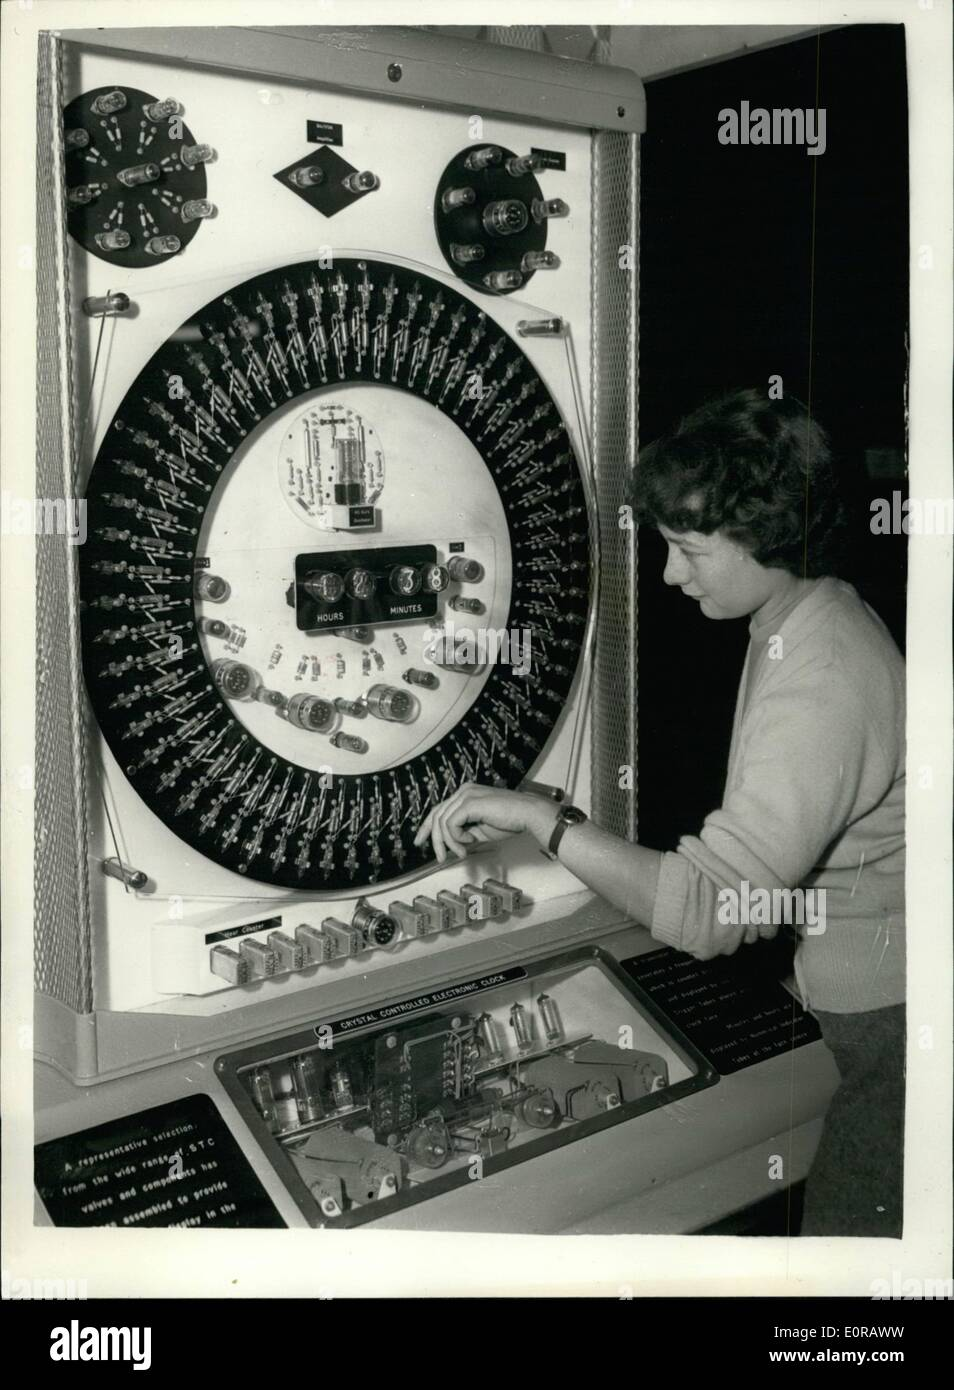 Nov. 11, 1958 - Radio Hobbies exhibition: The Radio Society of Great Britain's Radio Hobbies exhibition, opened today at the Royal horticultural old hall. photo shows Miss Carol Creagh, 18, of Leytonstone, checks her watch with an electronic clock. This clock is a working display to snow comprehensive collection today, on the standard telephone $ cable company's stand. - Stock Image